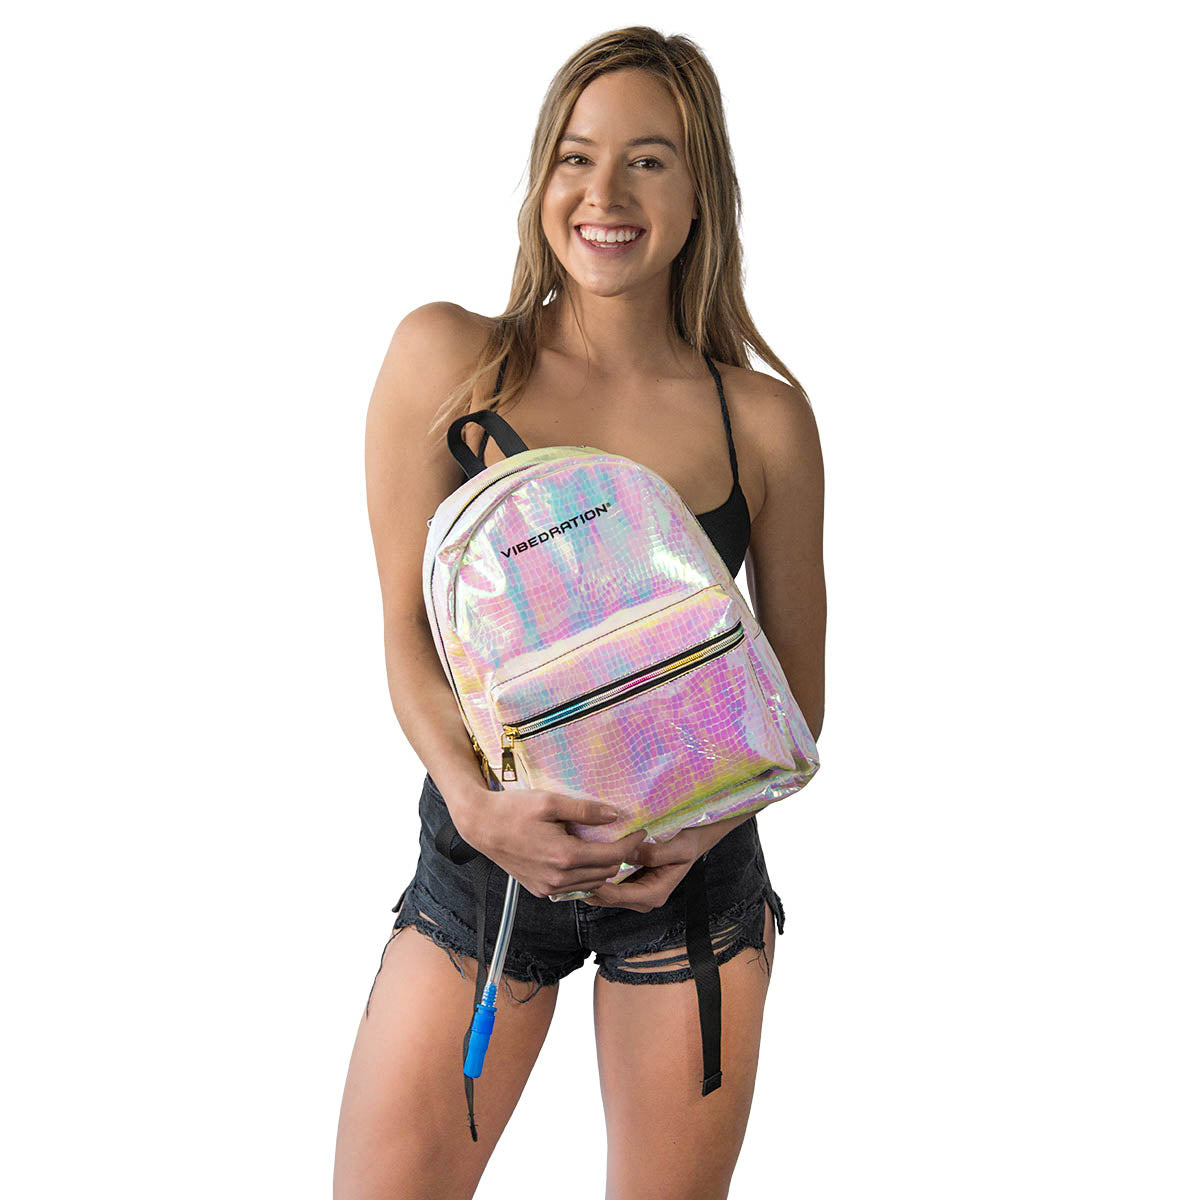 Girl holding Vegan Leather hydration pack